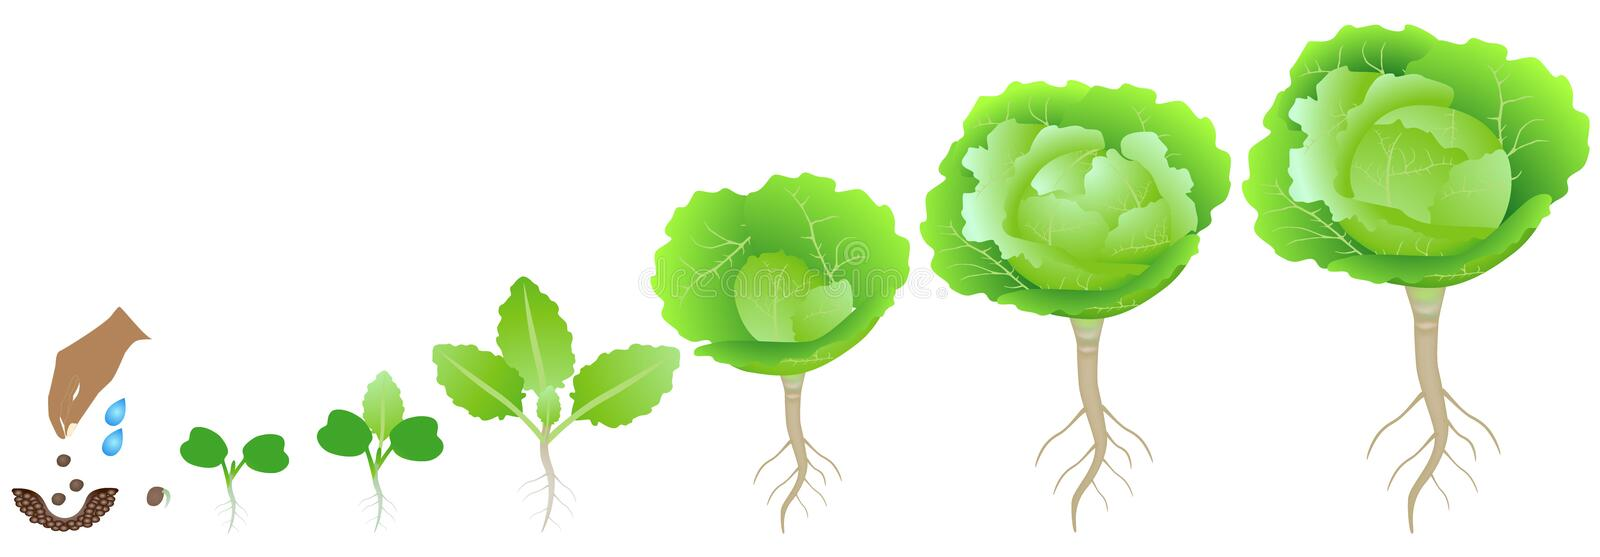 Cycle of growth of a cabbage plant on a white background. royalty free illustration